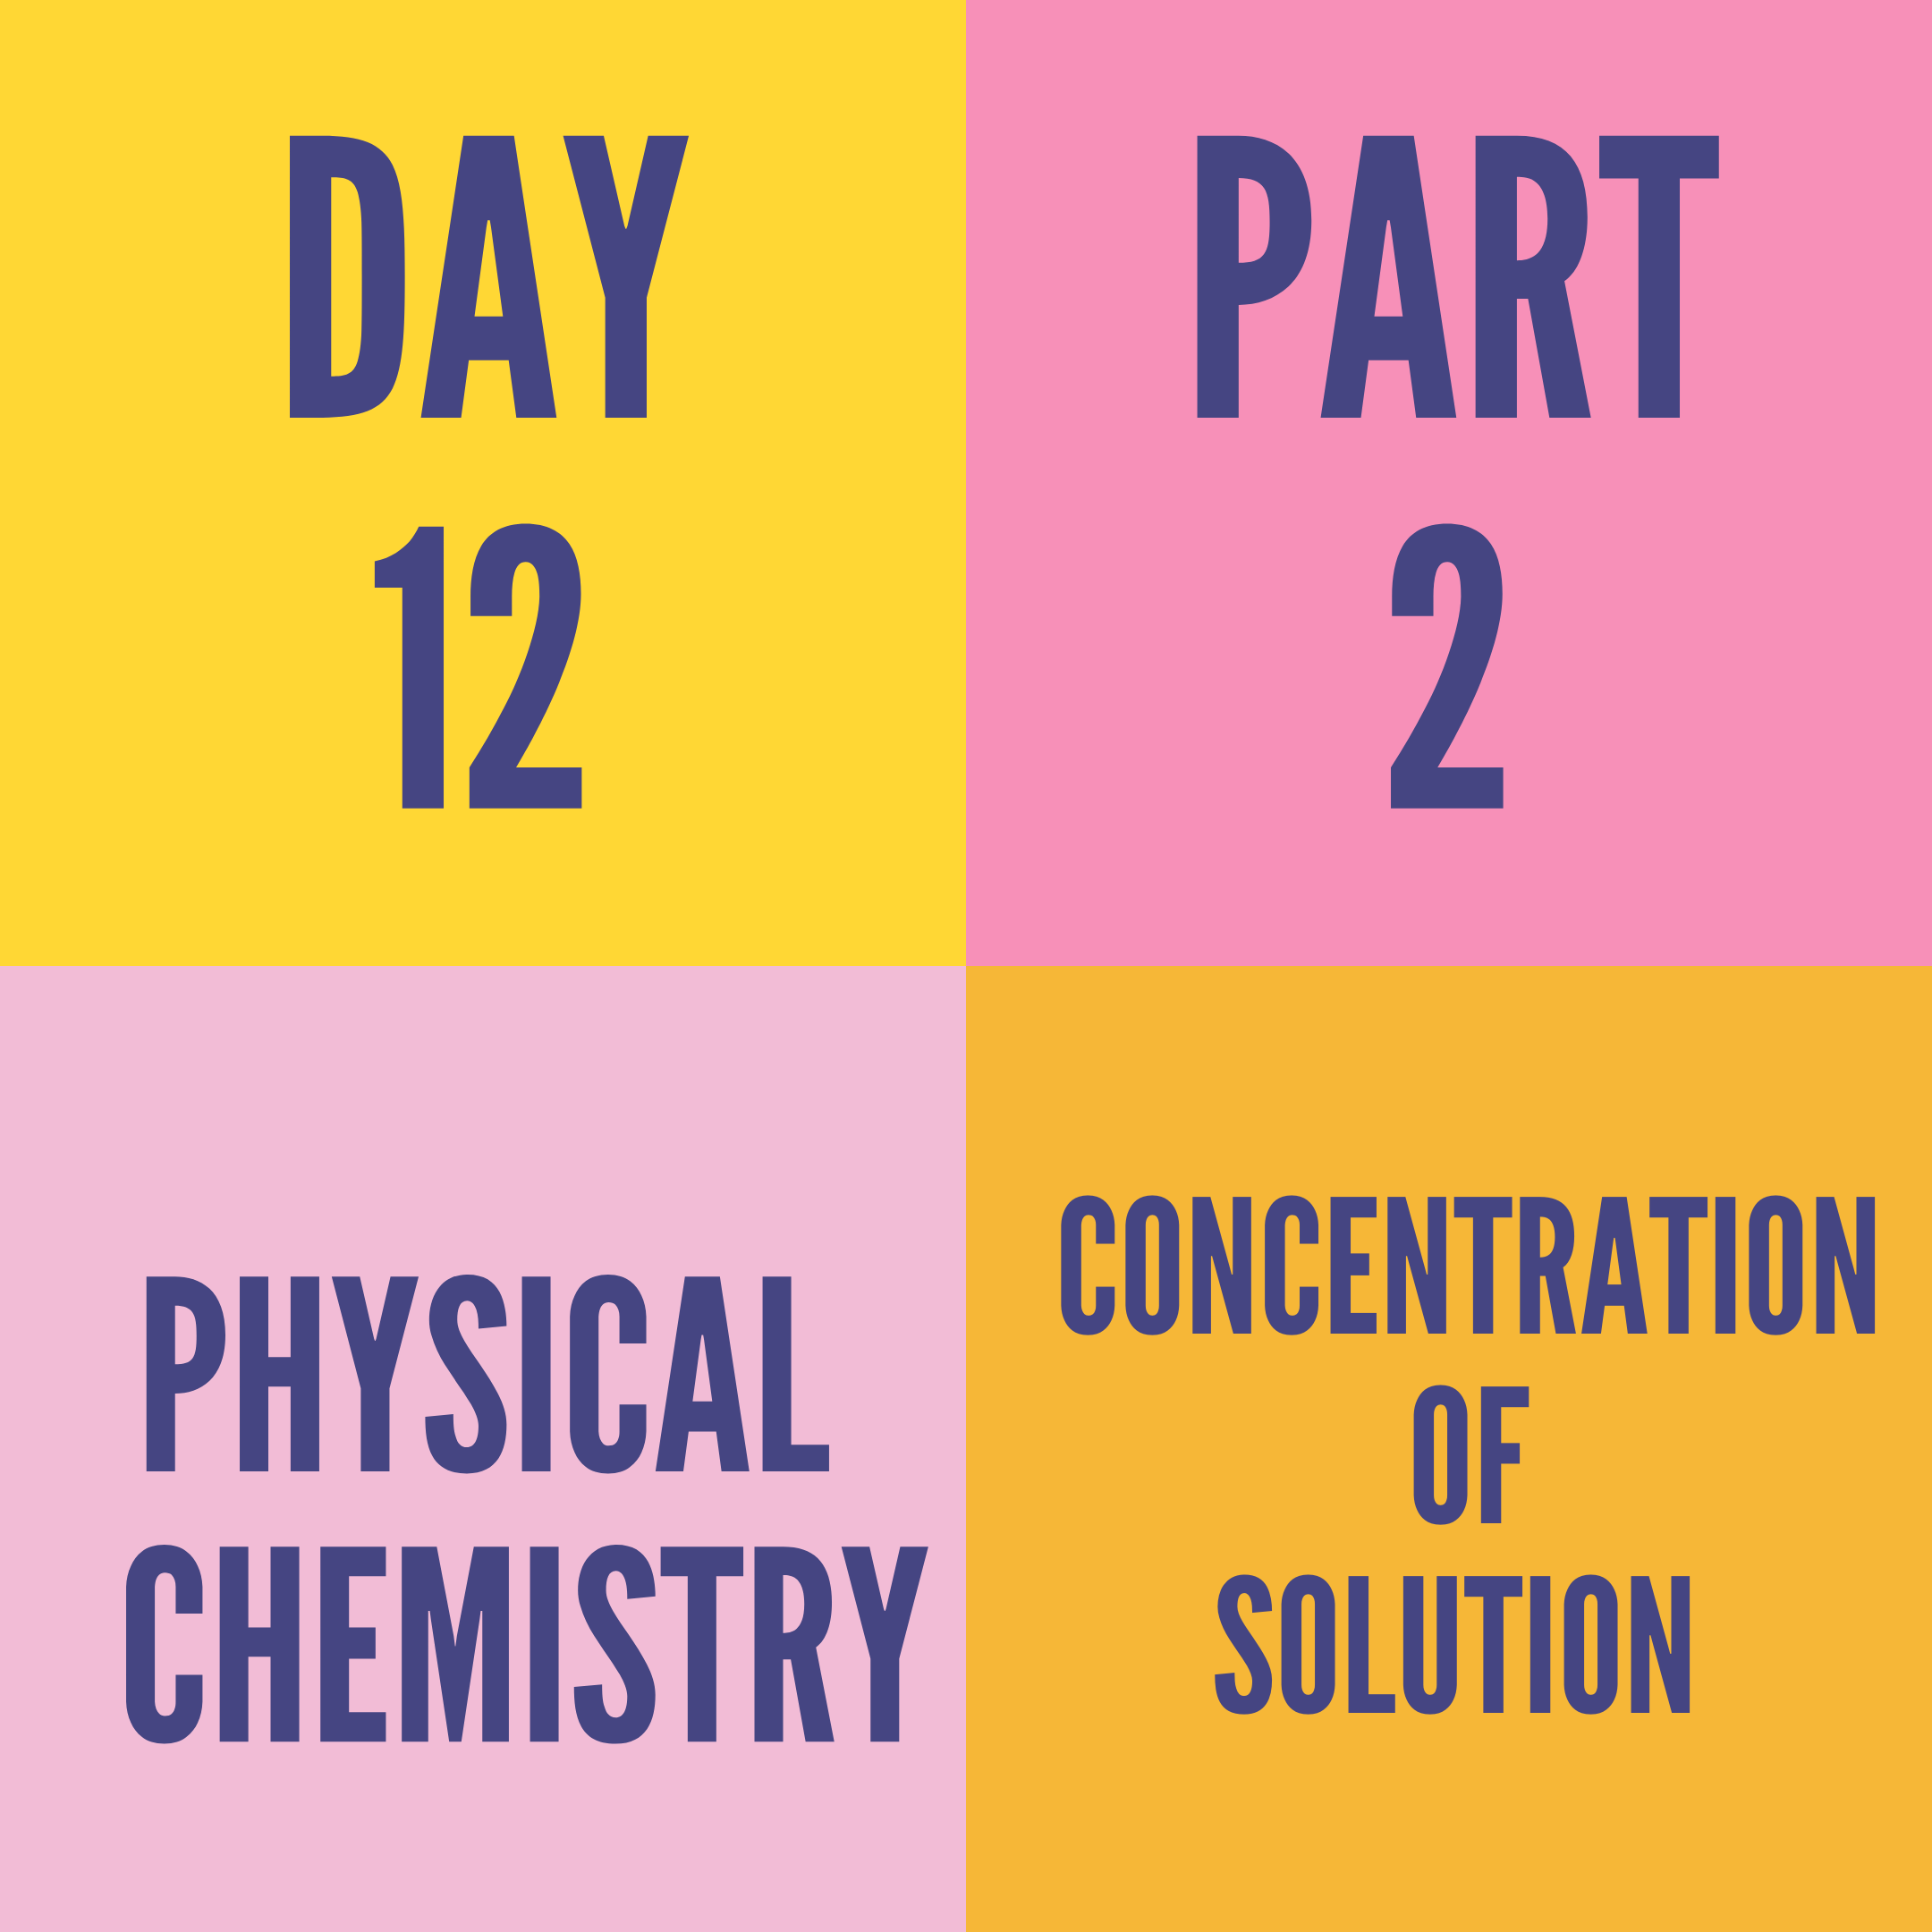 DAY-12 PART-2 CONCENTRATION OF SOLUTION